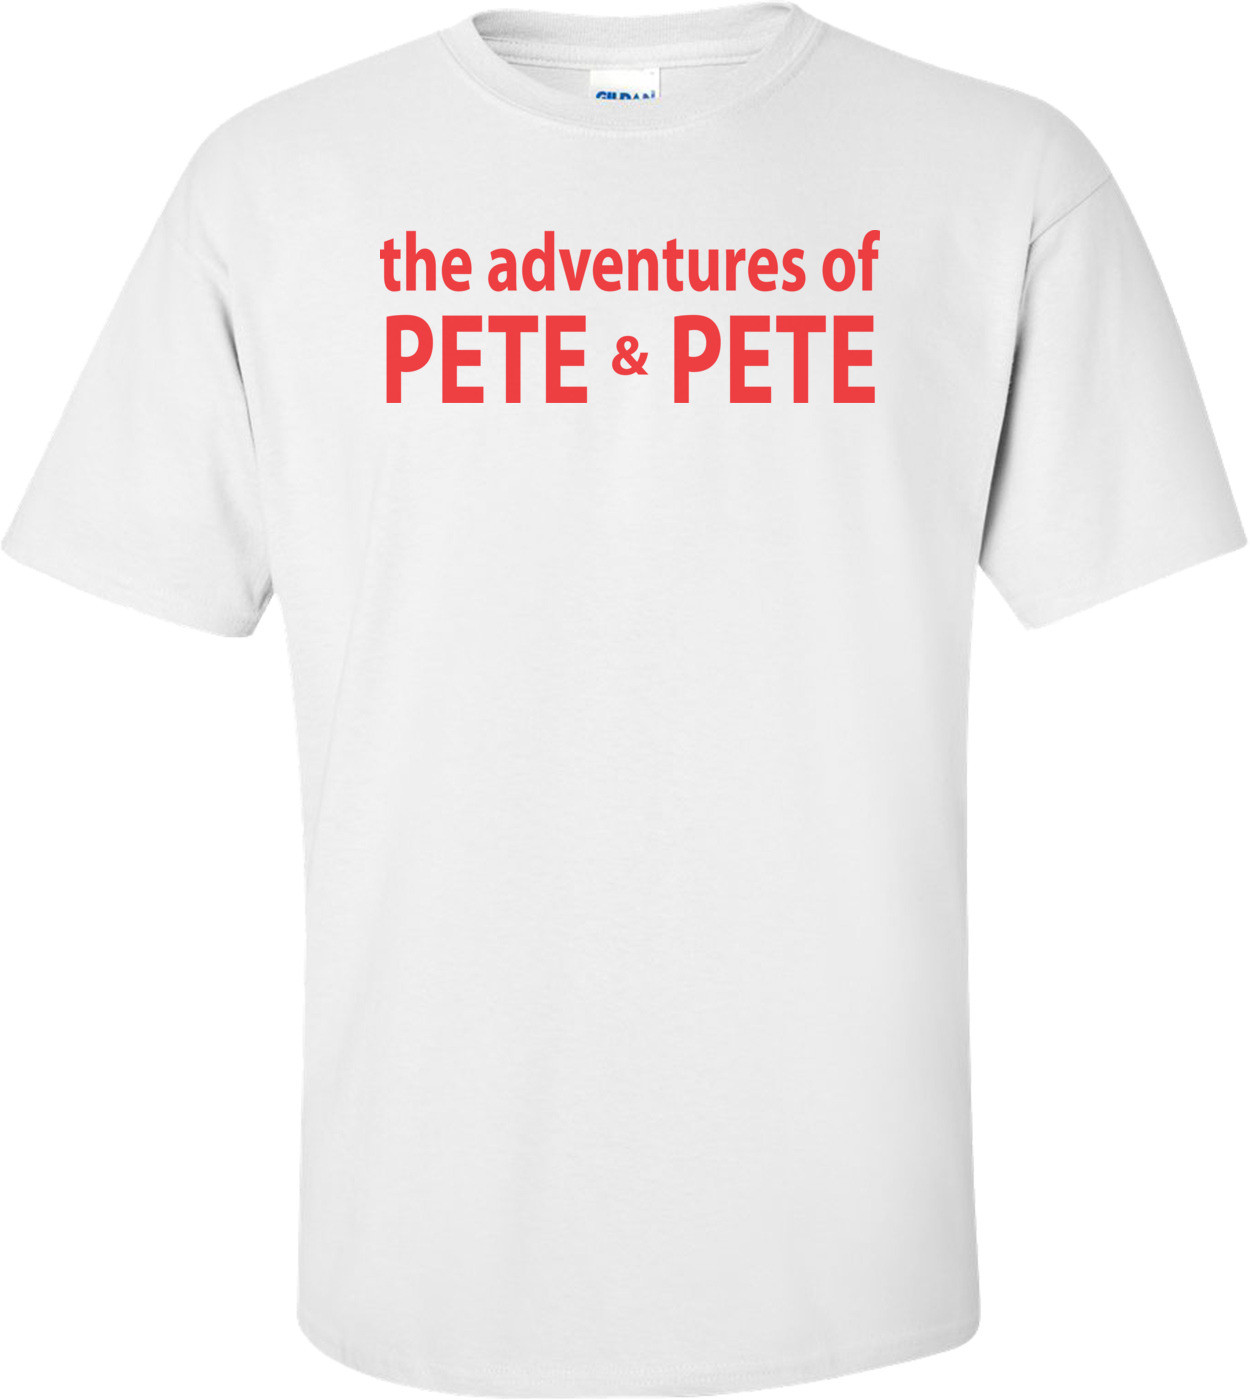 The Adventures Of Pete And Pete T-shirt